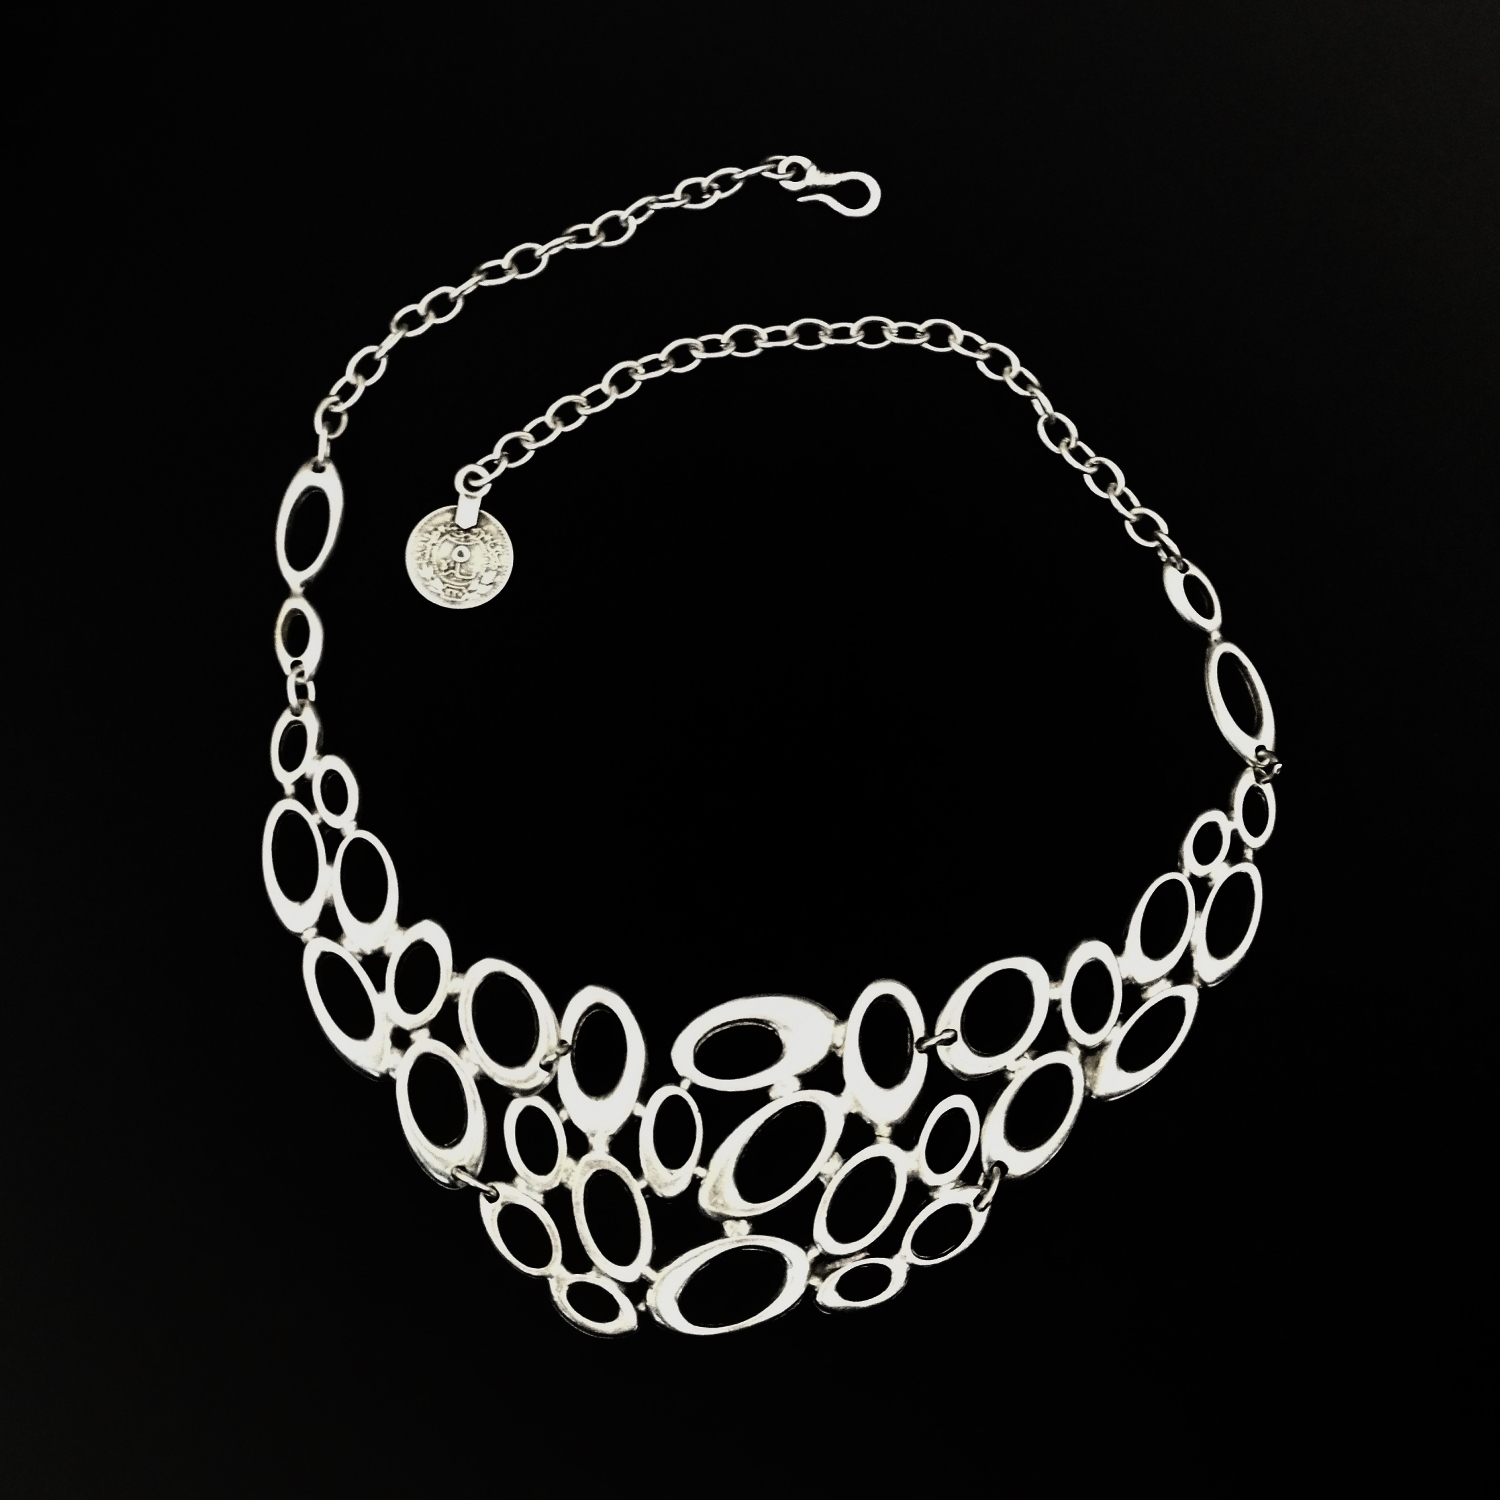 NECKLACE N021